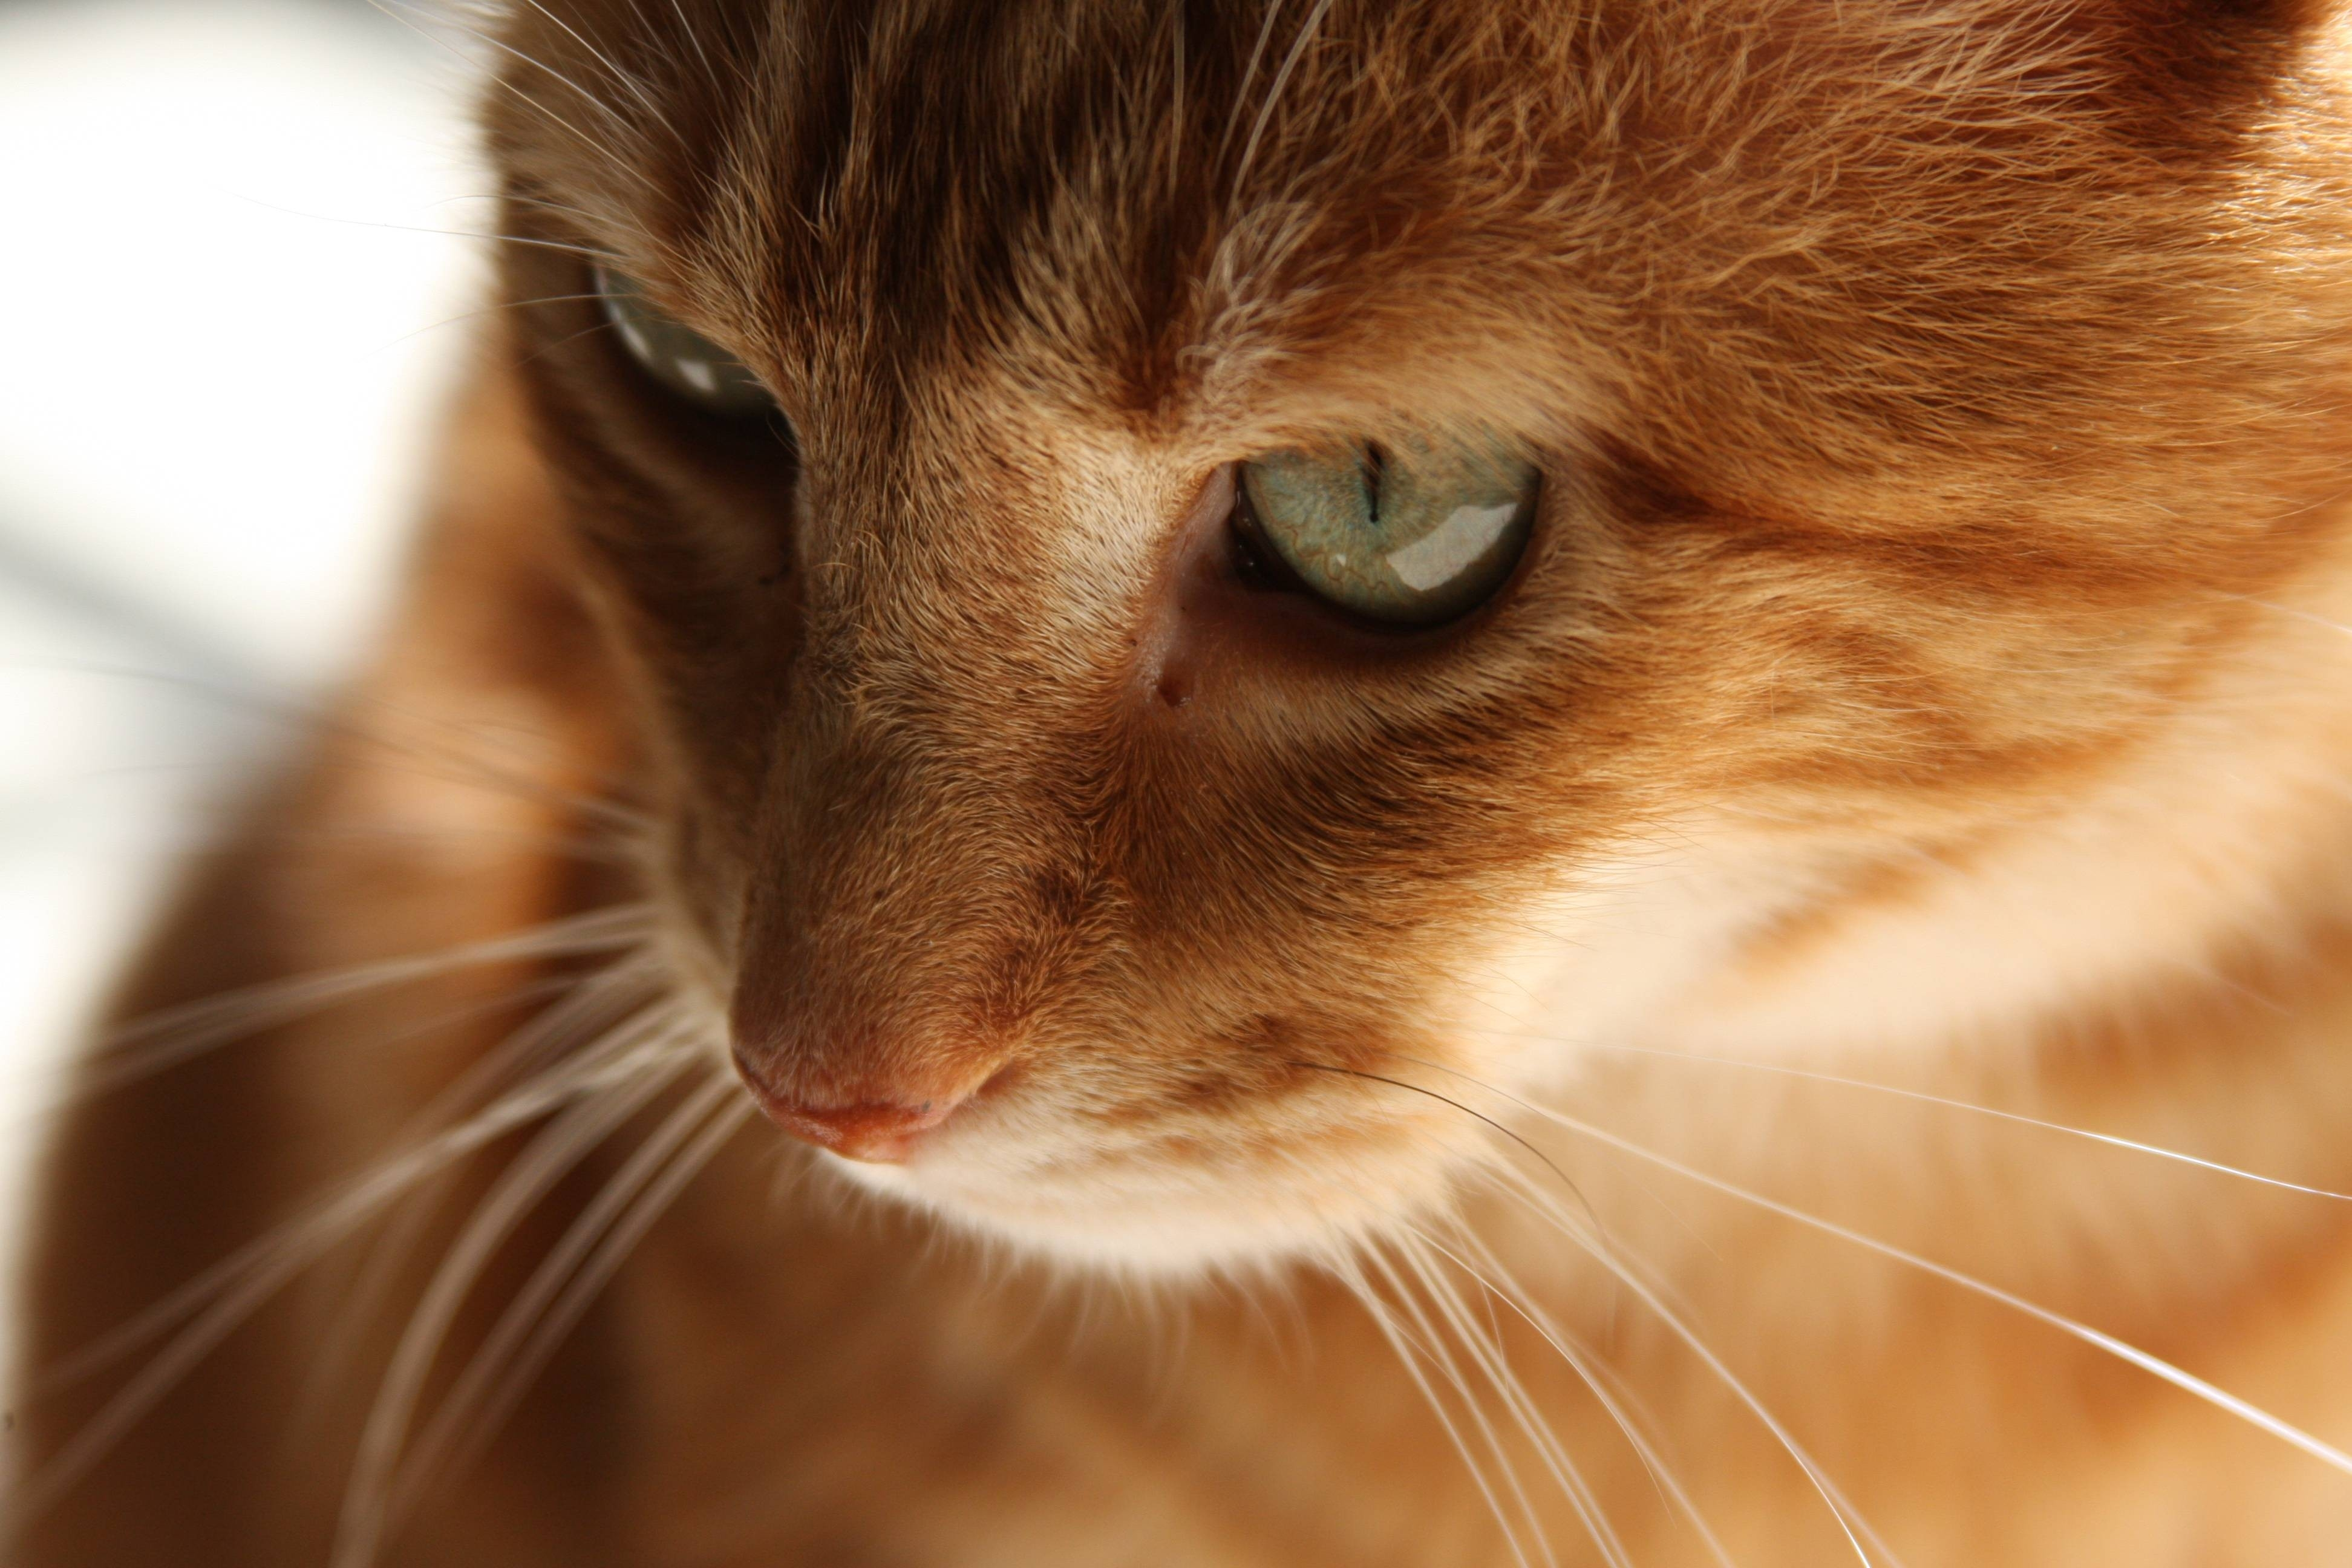 77048 download wallpaper Animals, Cat, Kitty, Kitten, Redhead, Muzzle screensavers and pictures for free